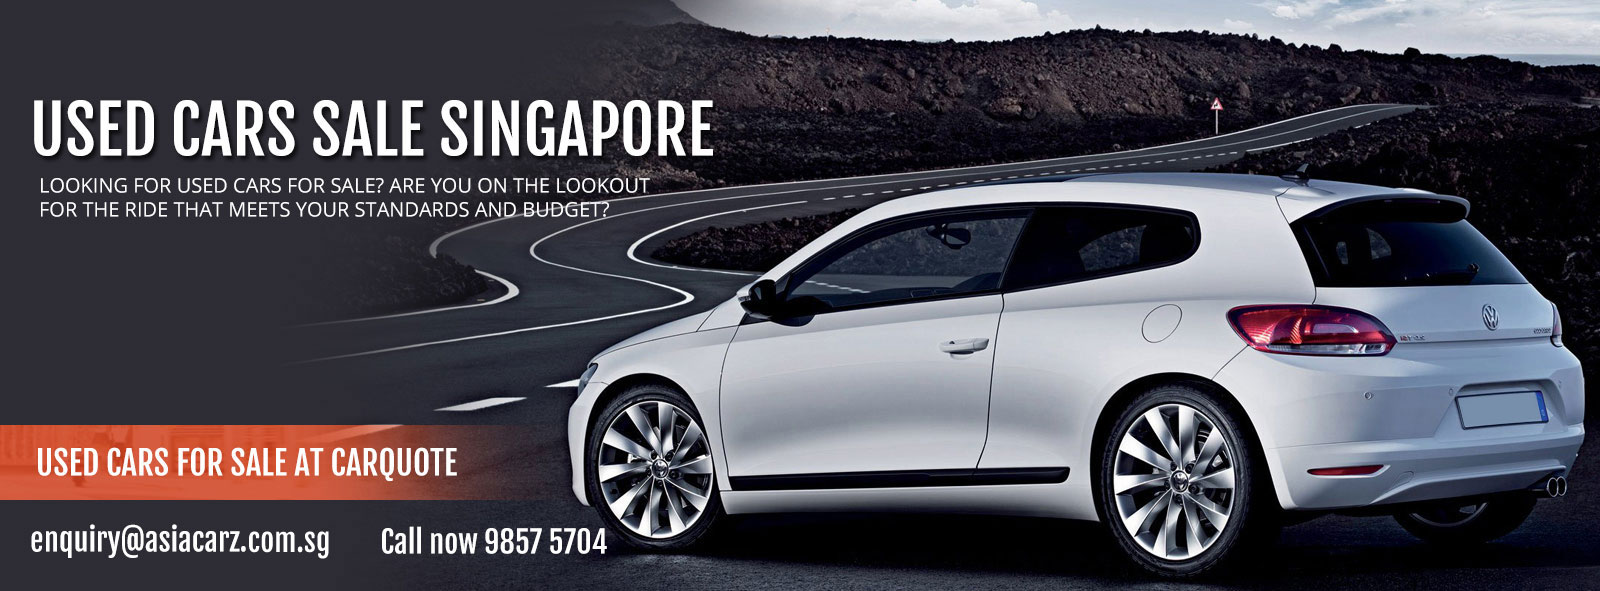 Used Cars Sale Singapore Carquote Mart Singapore Carquote